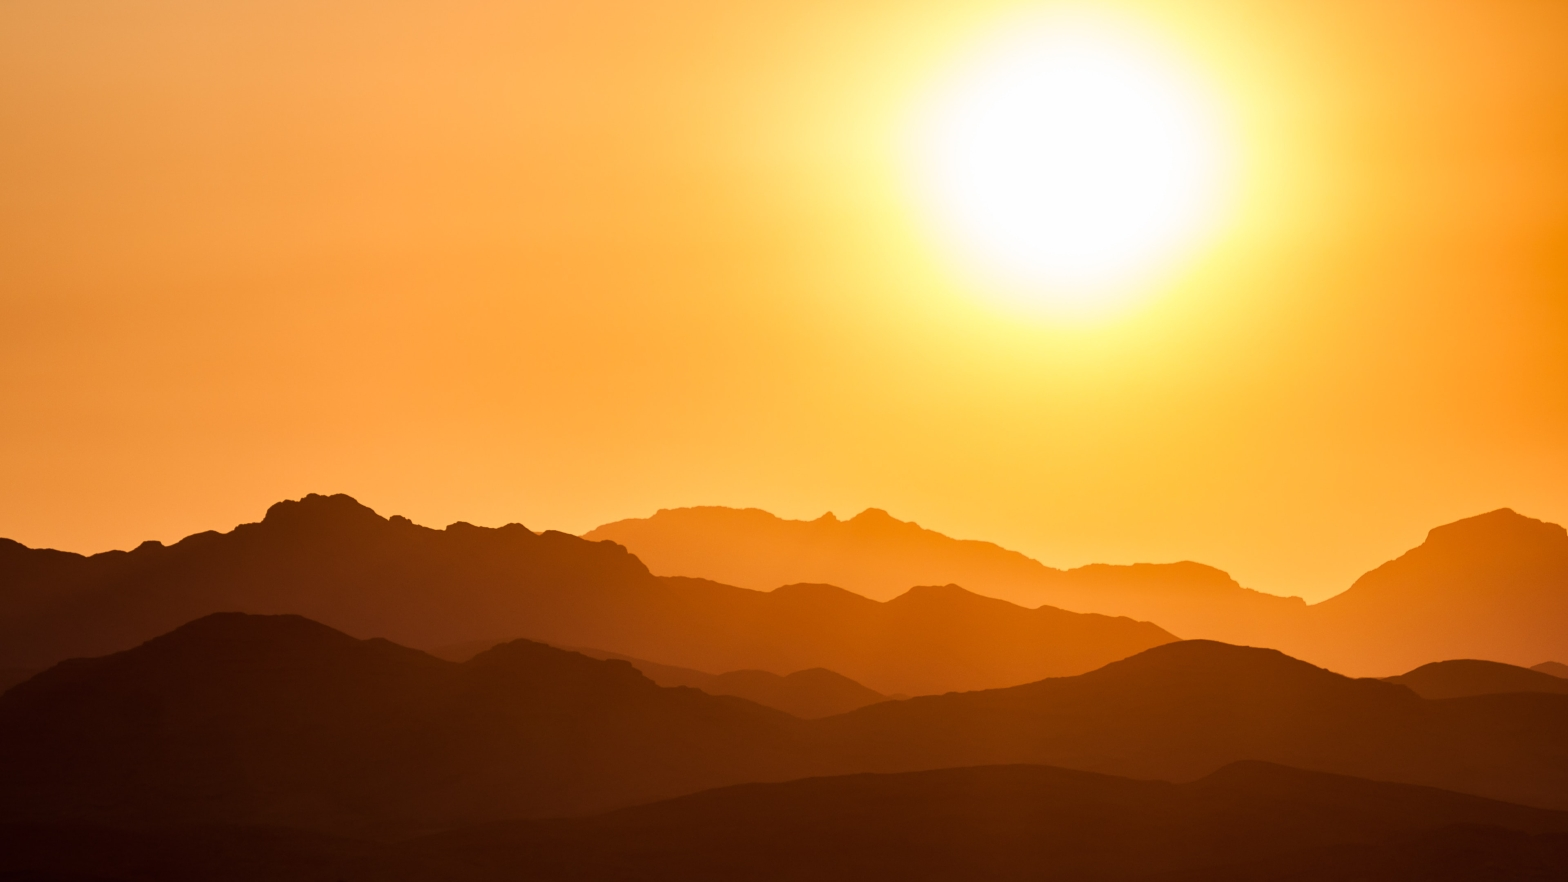 Image is of a sunrise over mountains